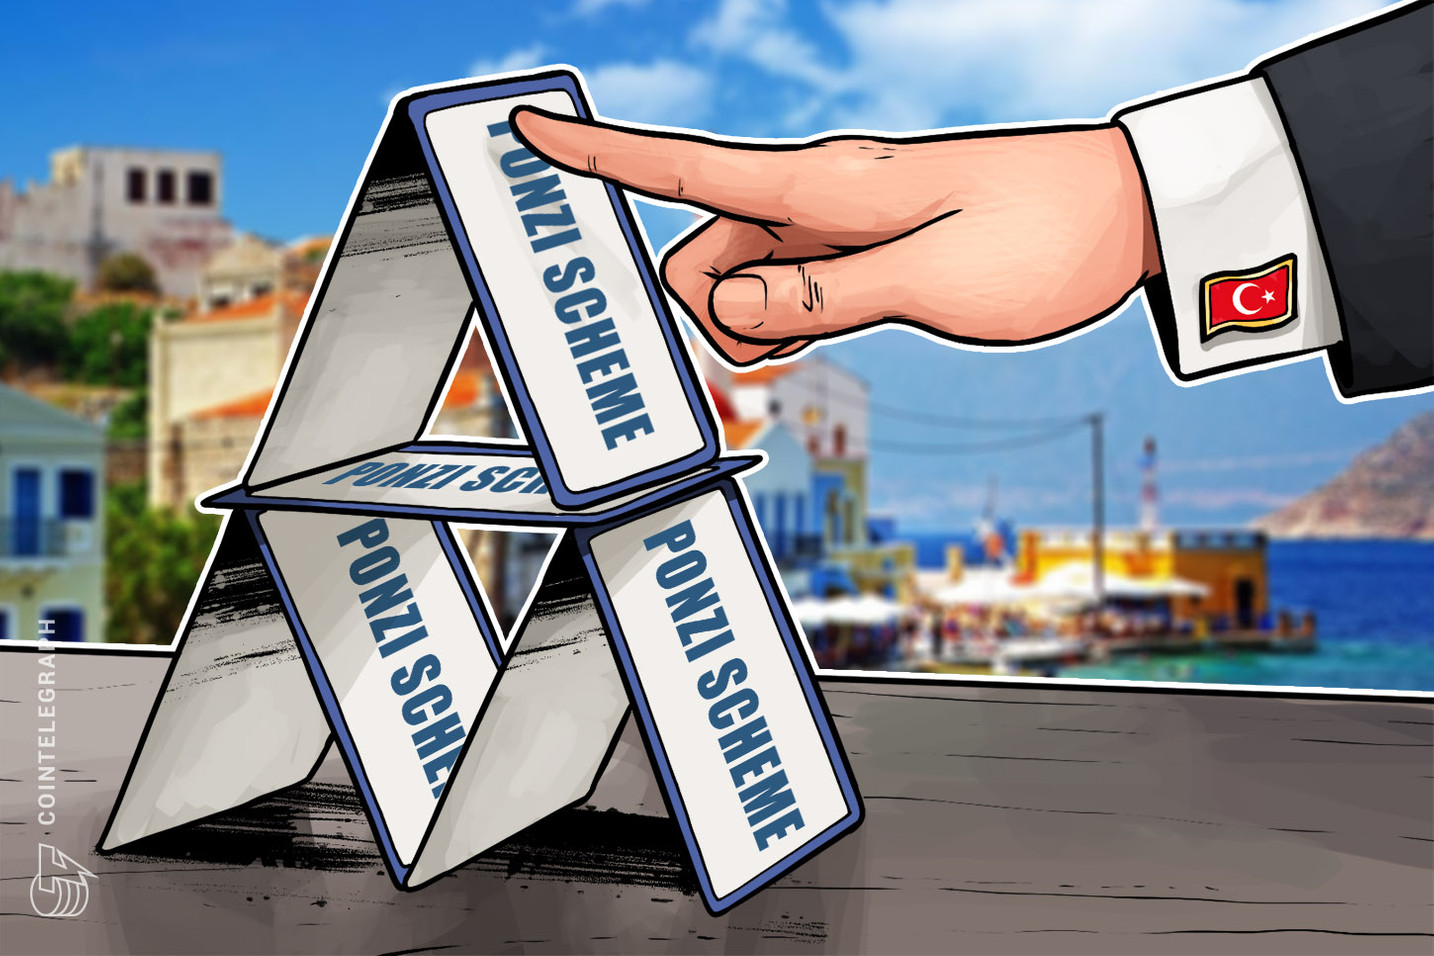 Self-Advertised as Turkey's 'National Cryptocurrency,' Turcoin Outed as Ponzi Scheme